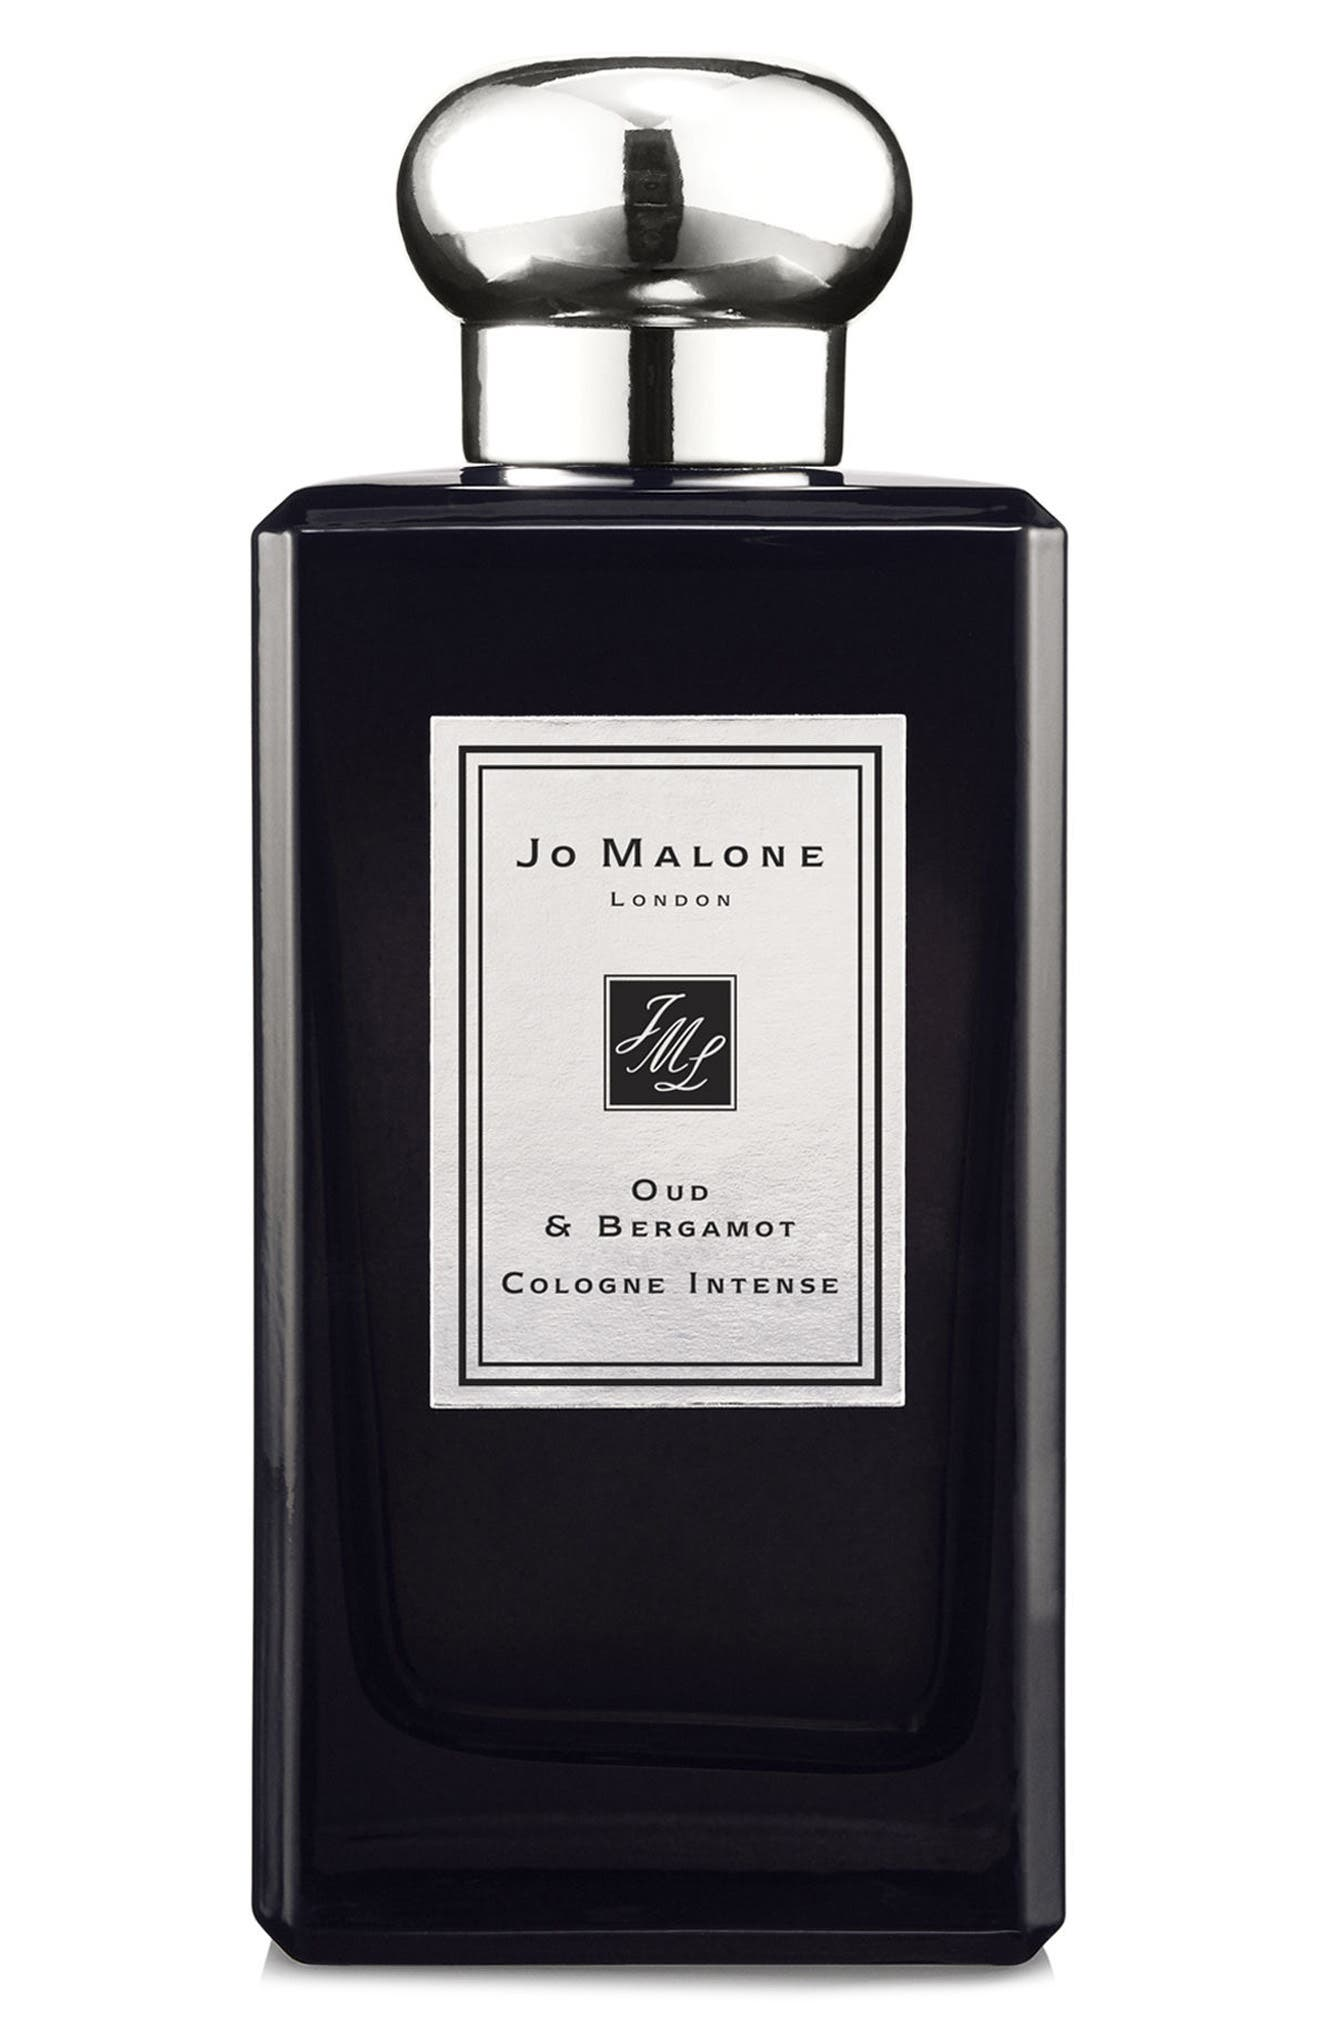 Jo Malone London™ 'Oud & Bergamot' Cologne Intense